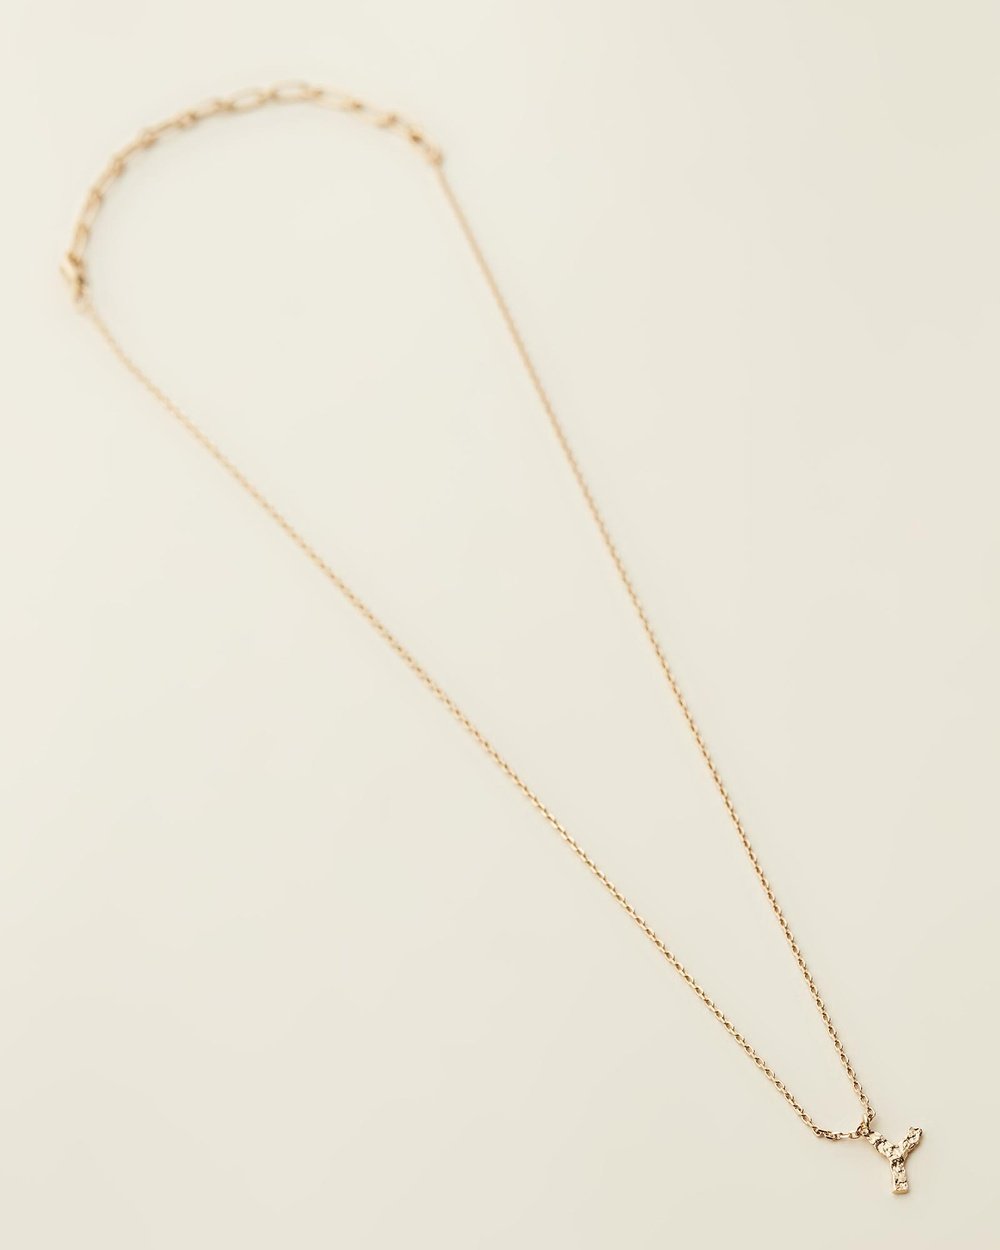 Amber Sceats Jadé Tunchy x Petite Letter Necklace Y Jewellery Gold